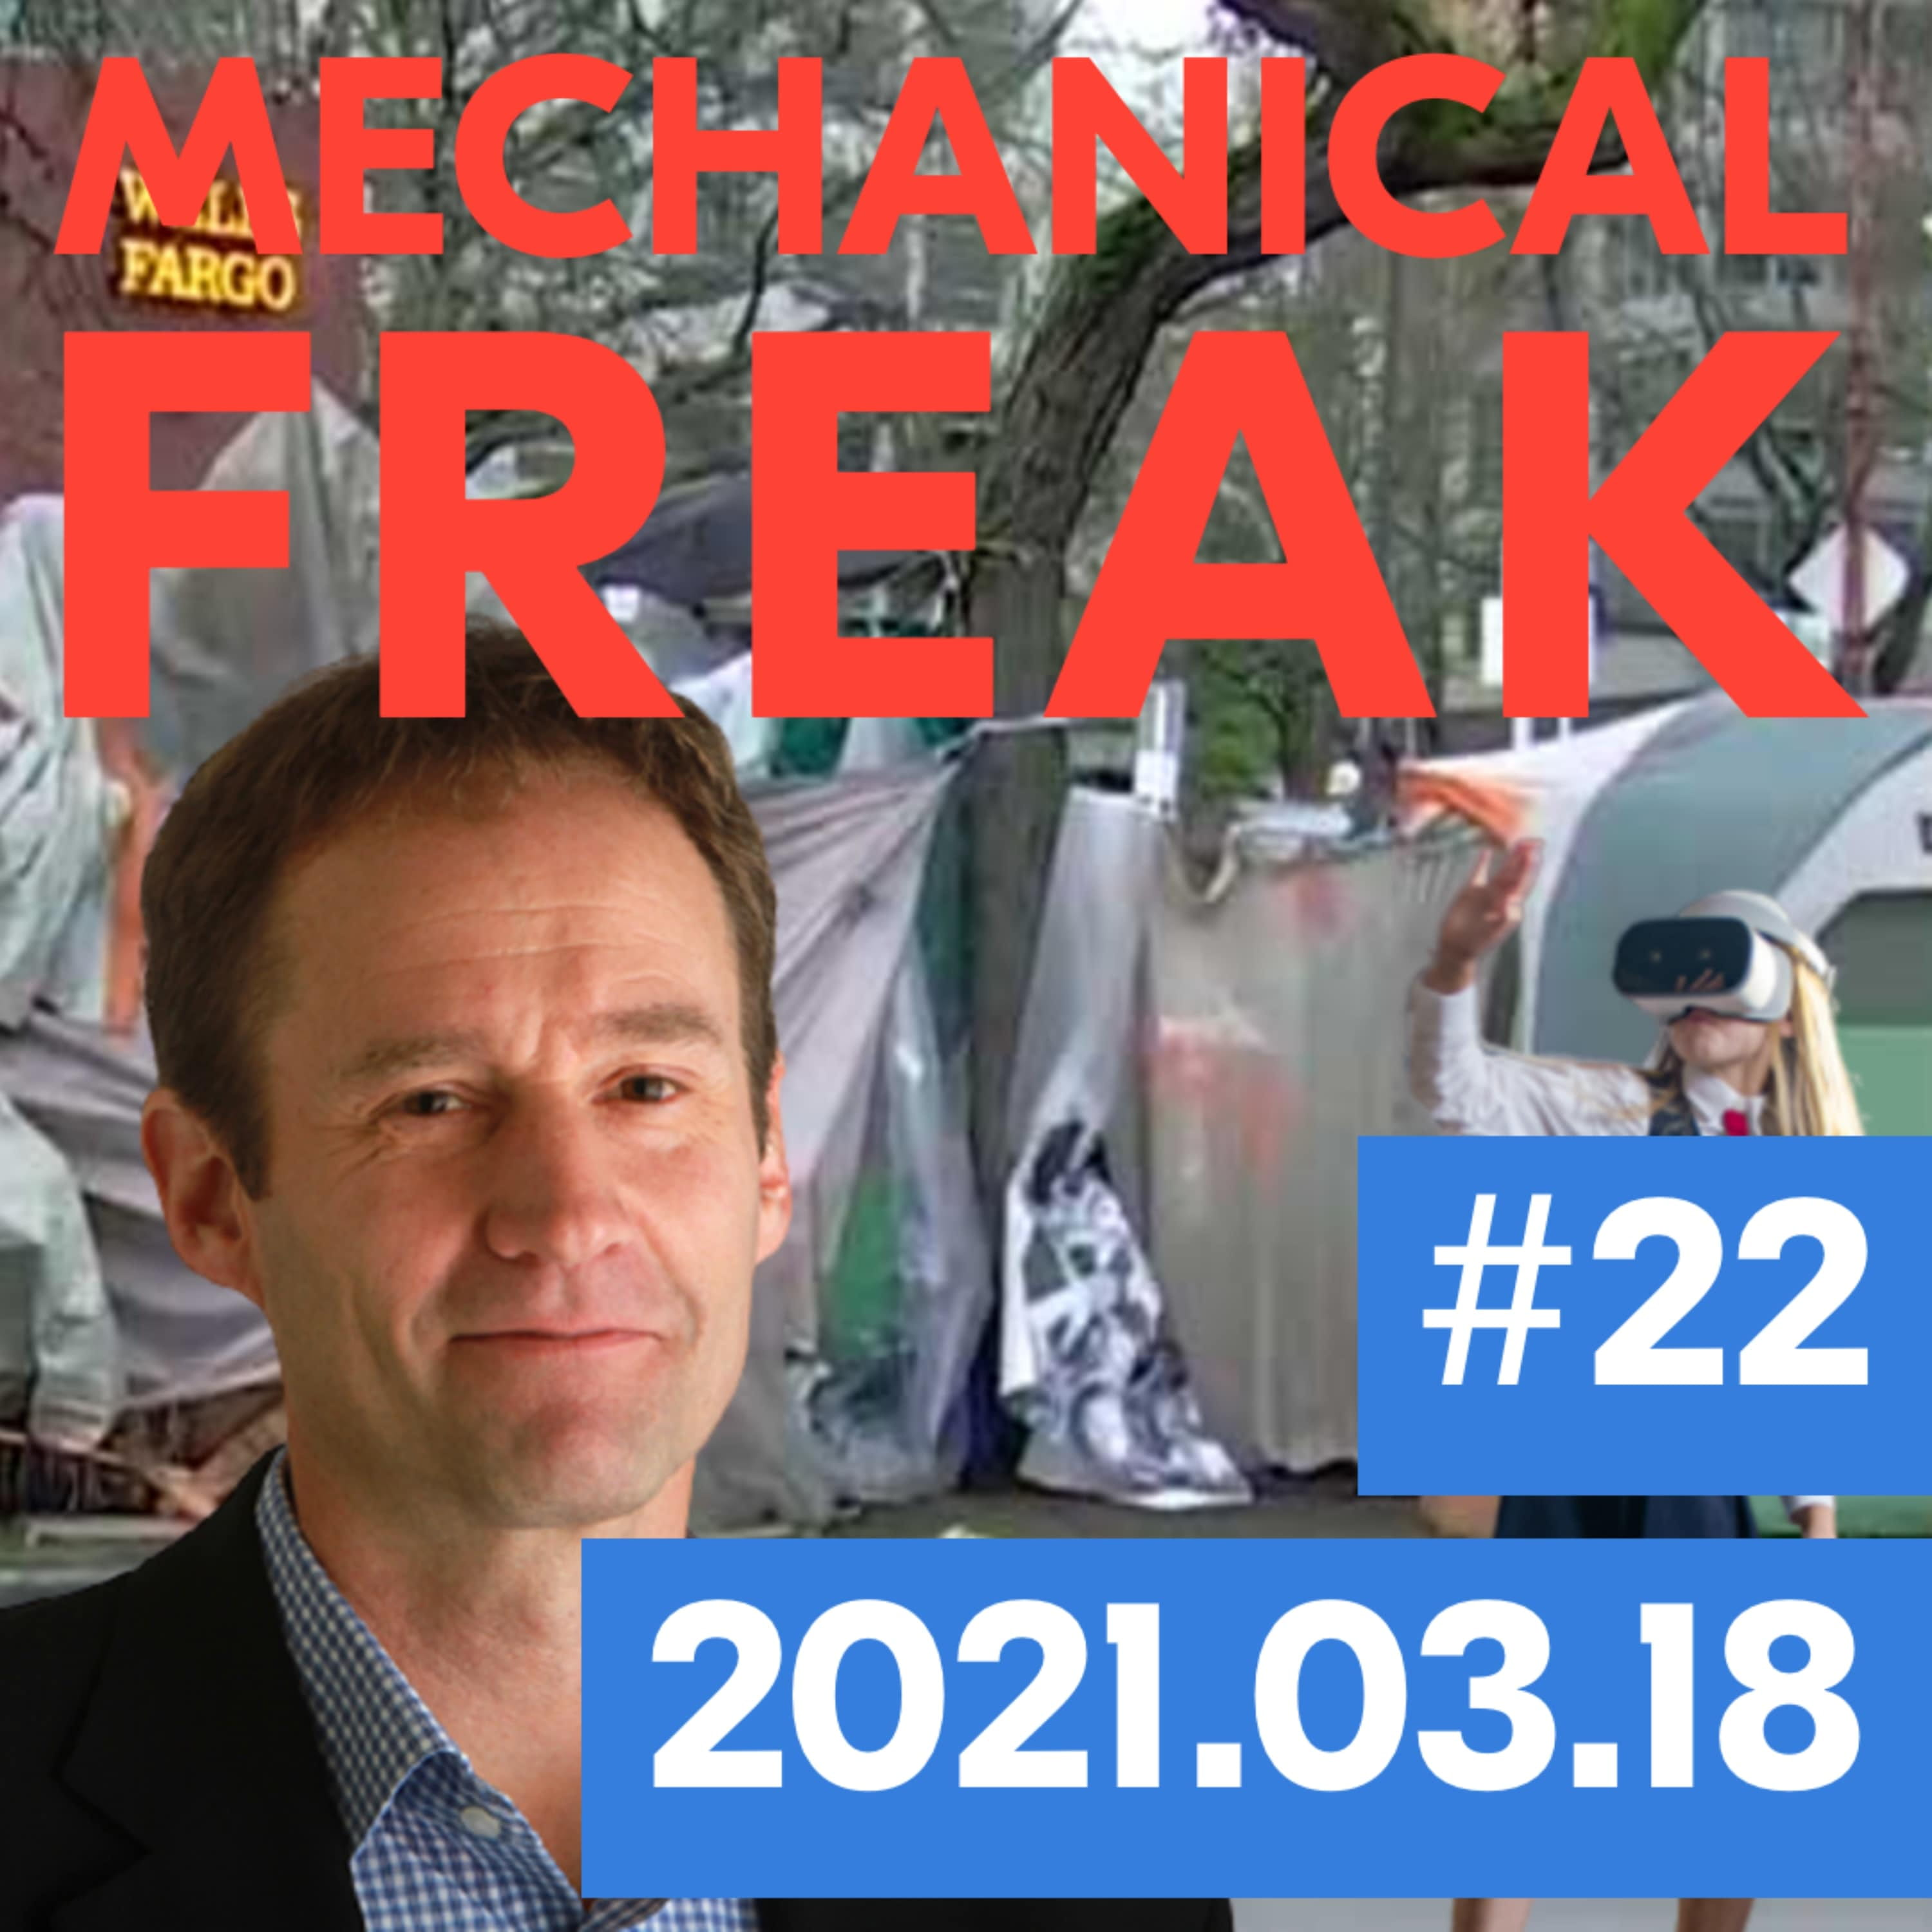 Episode #mechanical-freak-22 cover